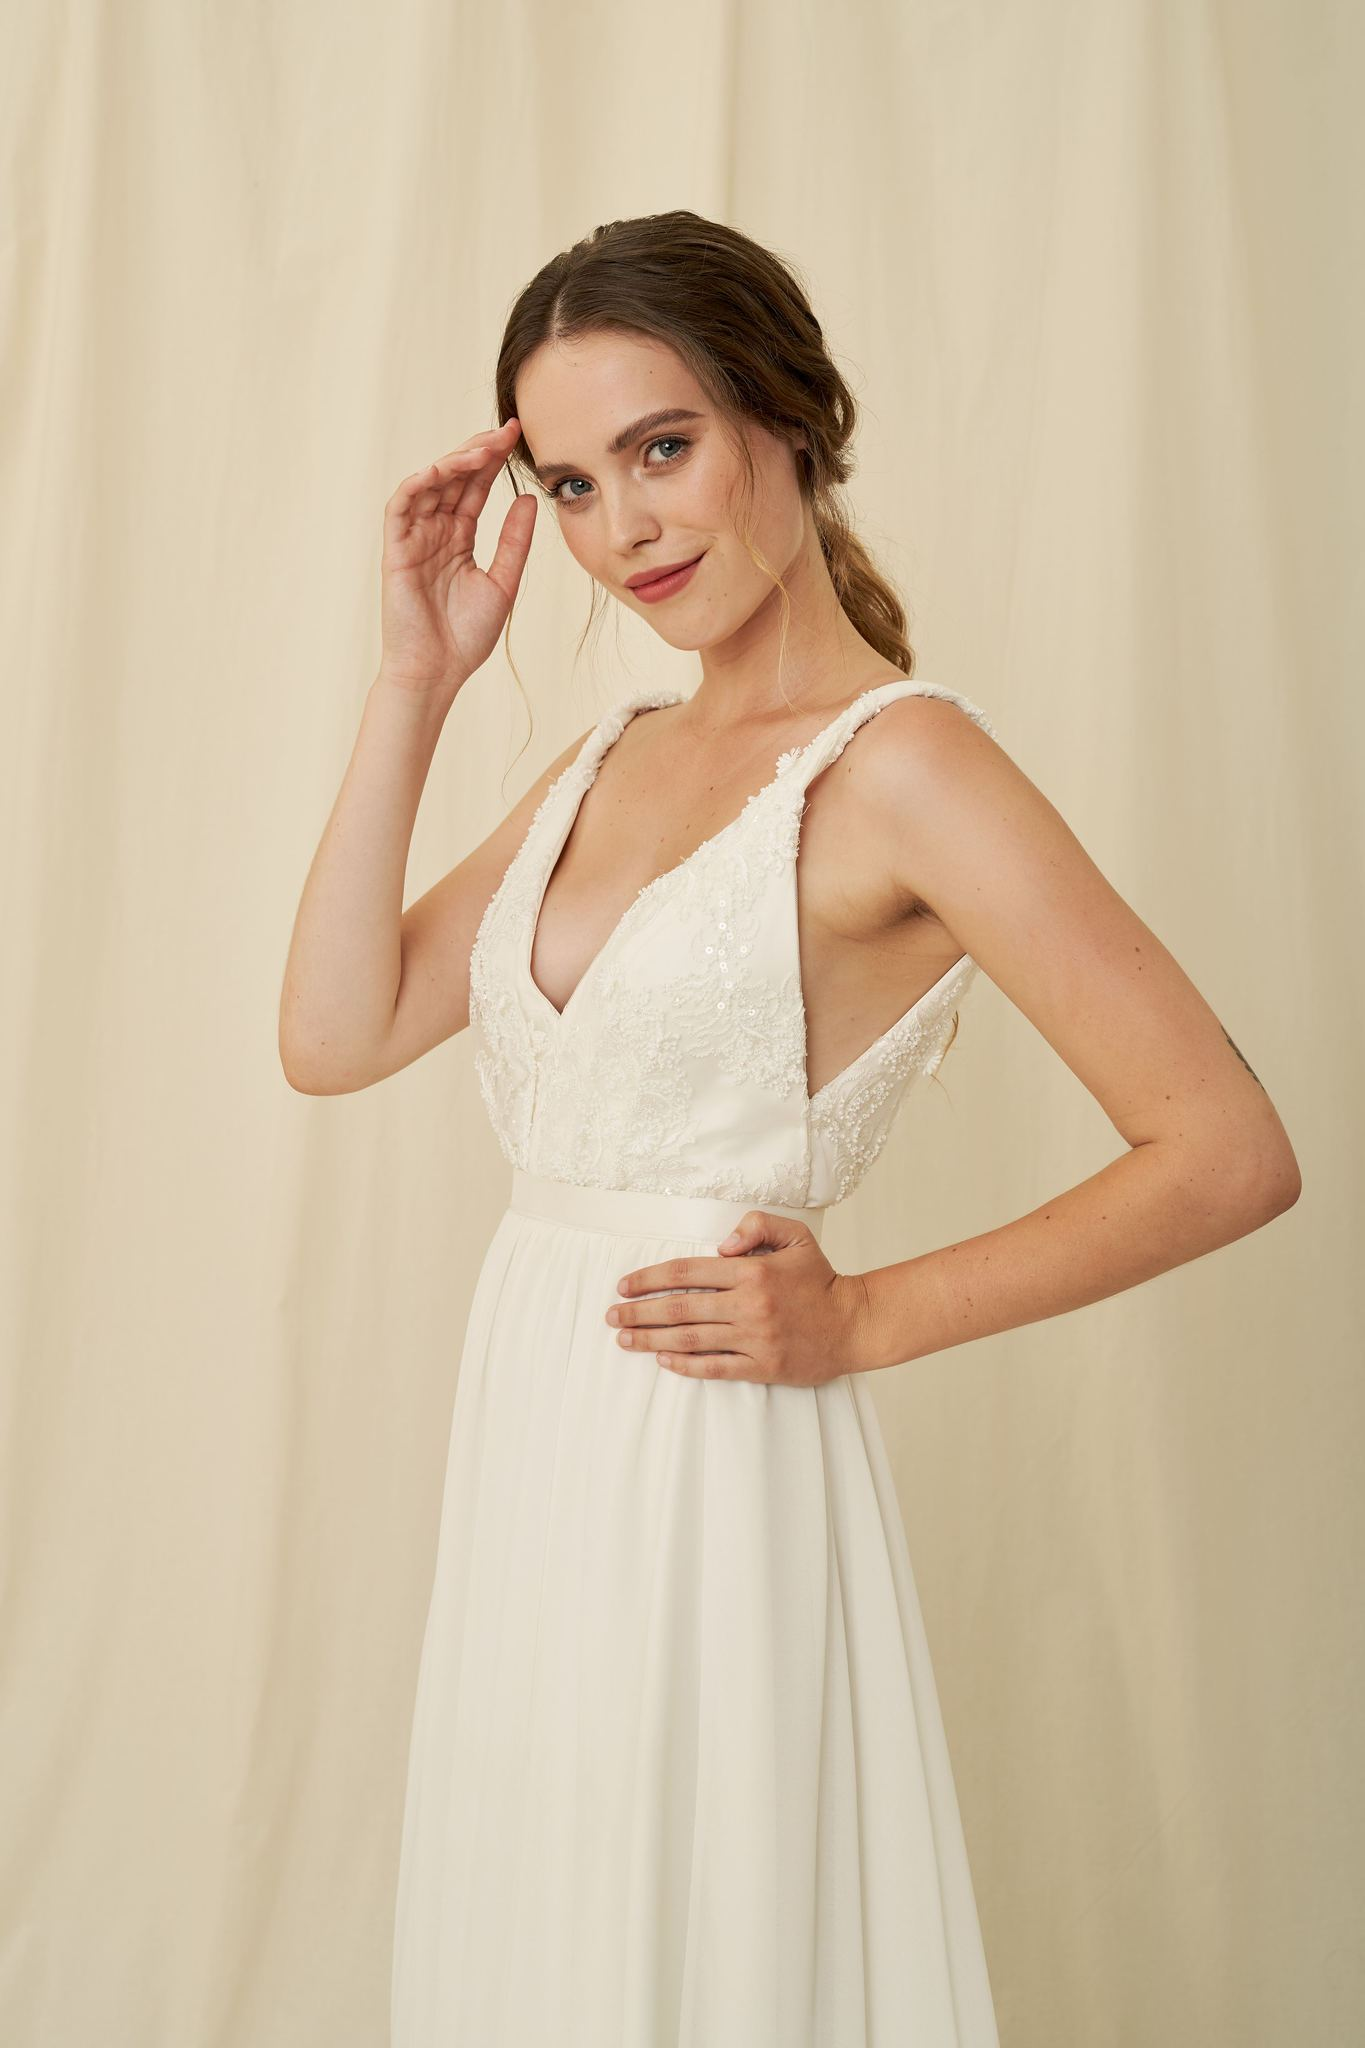 A lightweight wedding gown with a chiffon skirt and a bodice of beaded lace with twisted straps